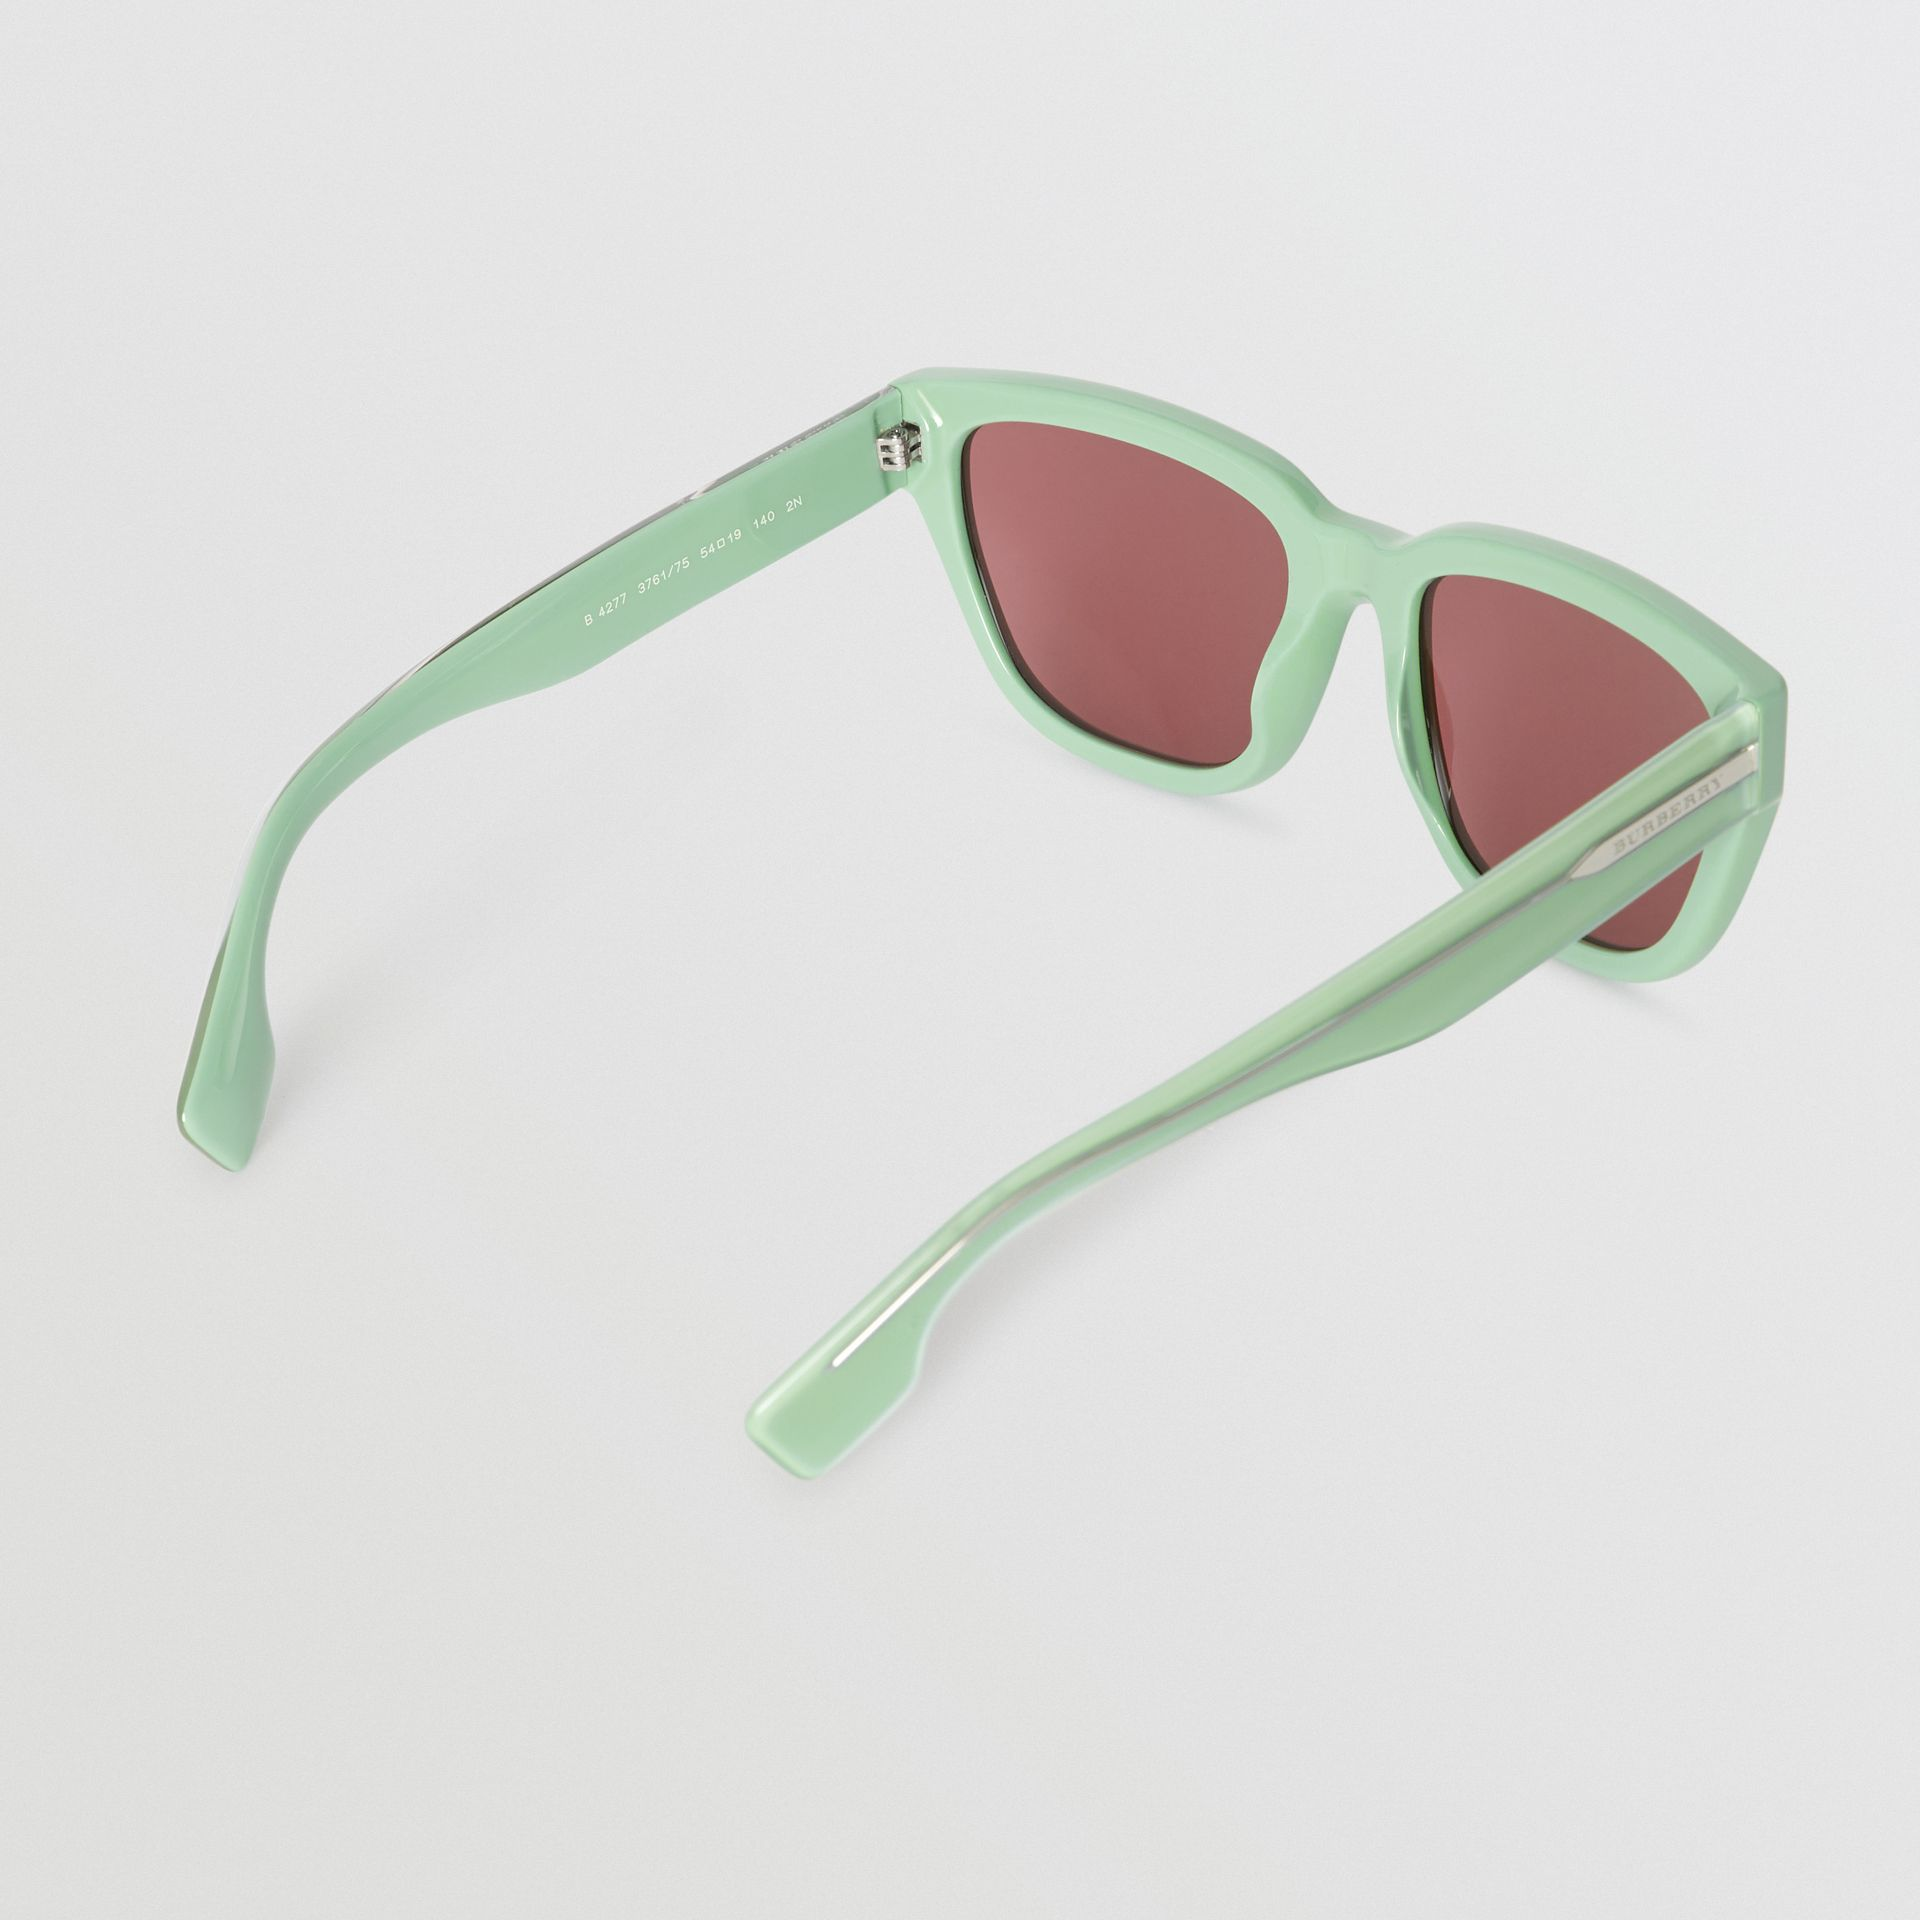 Square Frame Sunglasses in Mint Green - Women | Burberry - gallery image 4